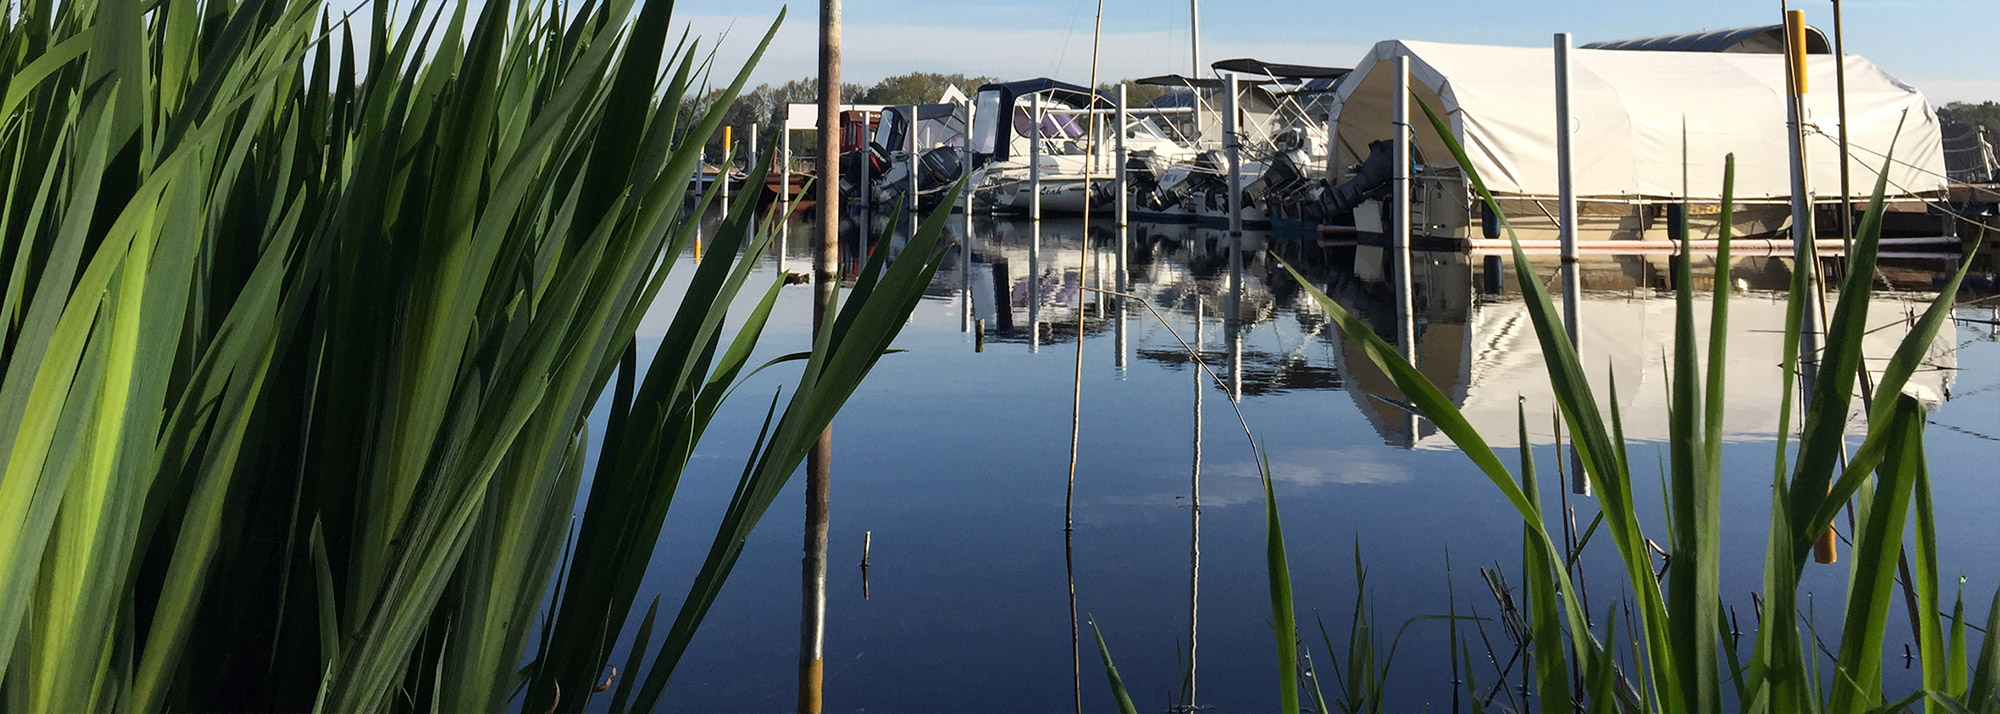 Steganlage und Boote am Schwielowsee/Moorings and boats on Lake Schwielowsee © Henning Harms